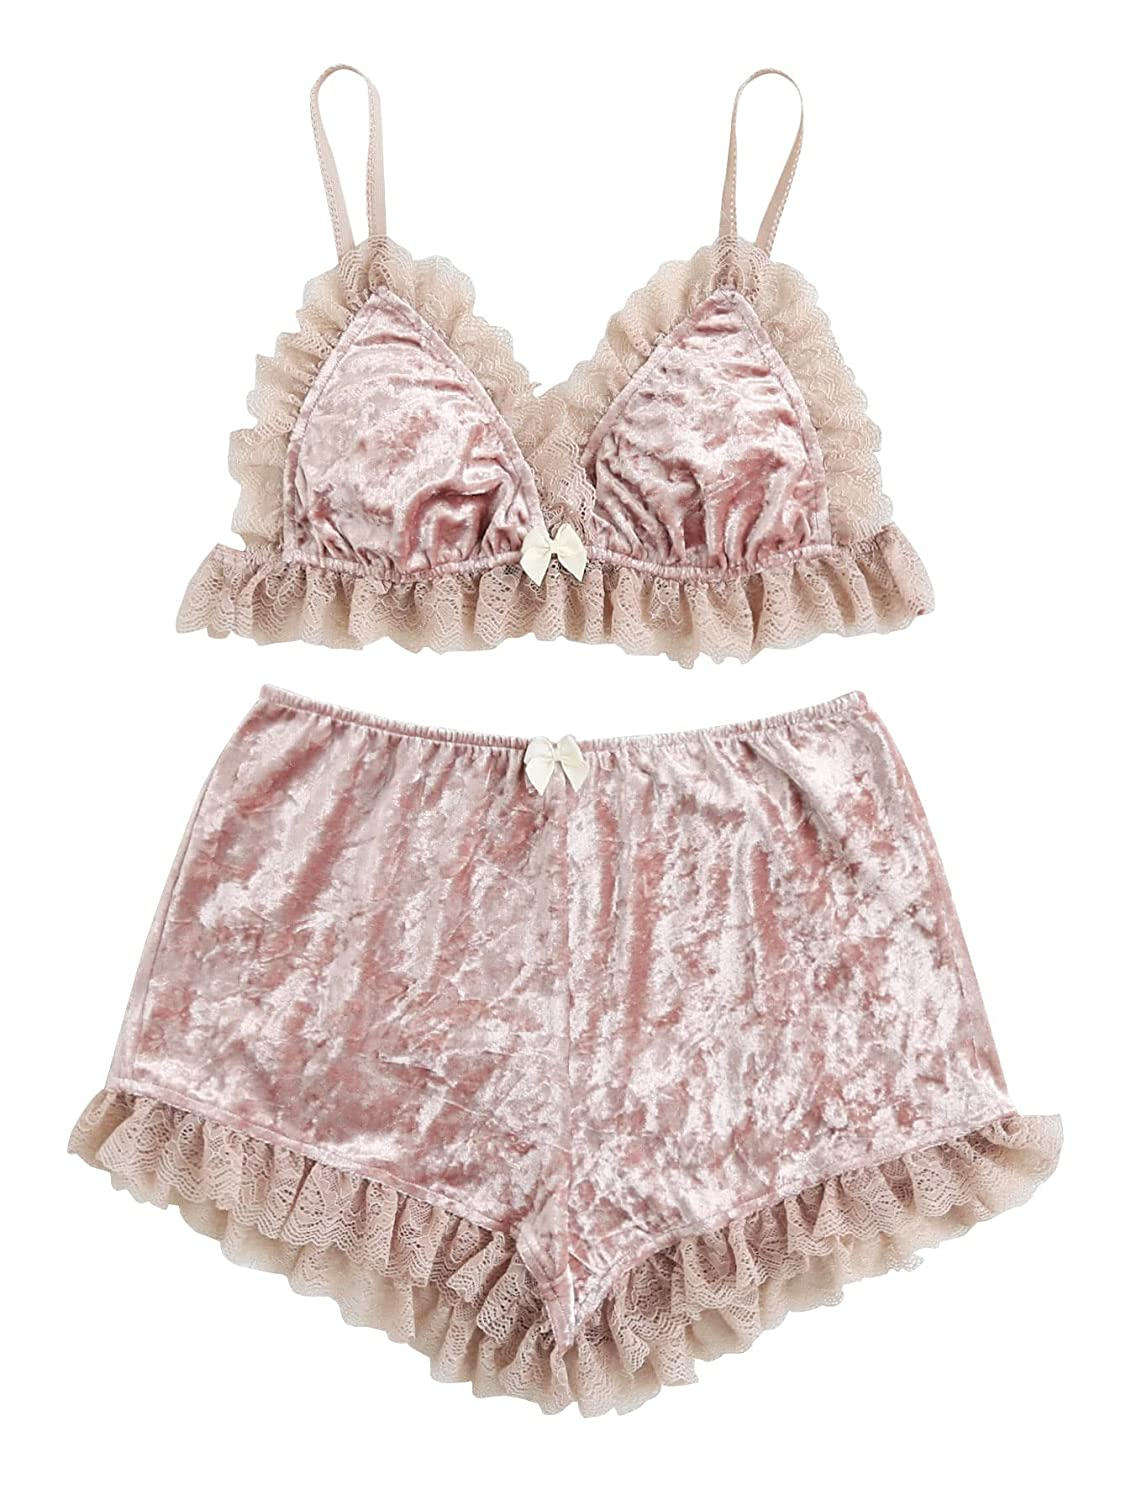 284314f4b9a0b DIDK Women s Lace Trim Velvet Bralette and Shorts Pajama Set at Amazon  Women s Clothing store